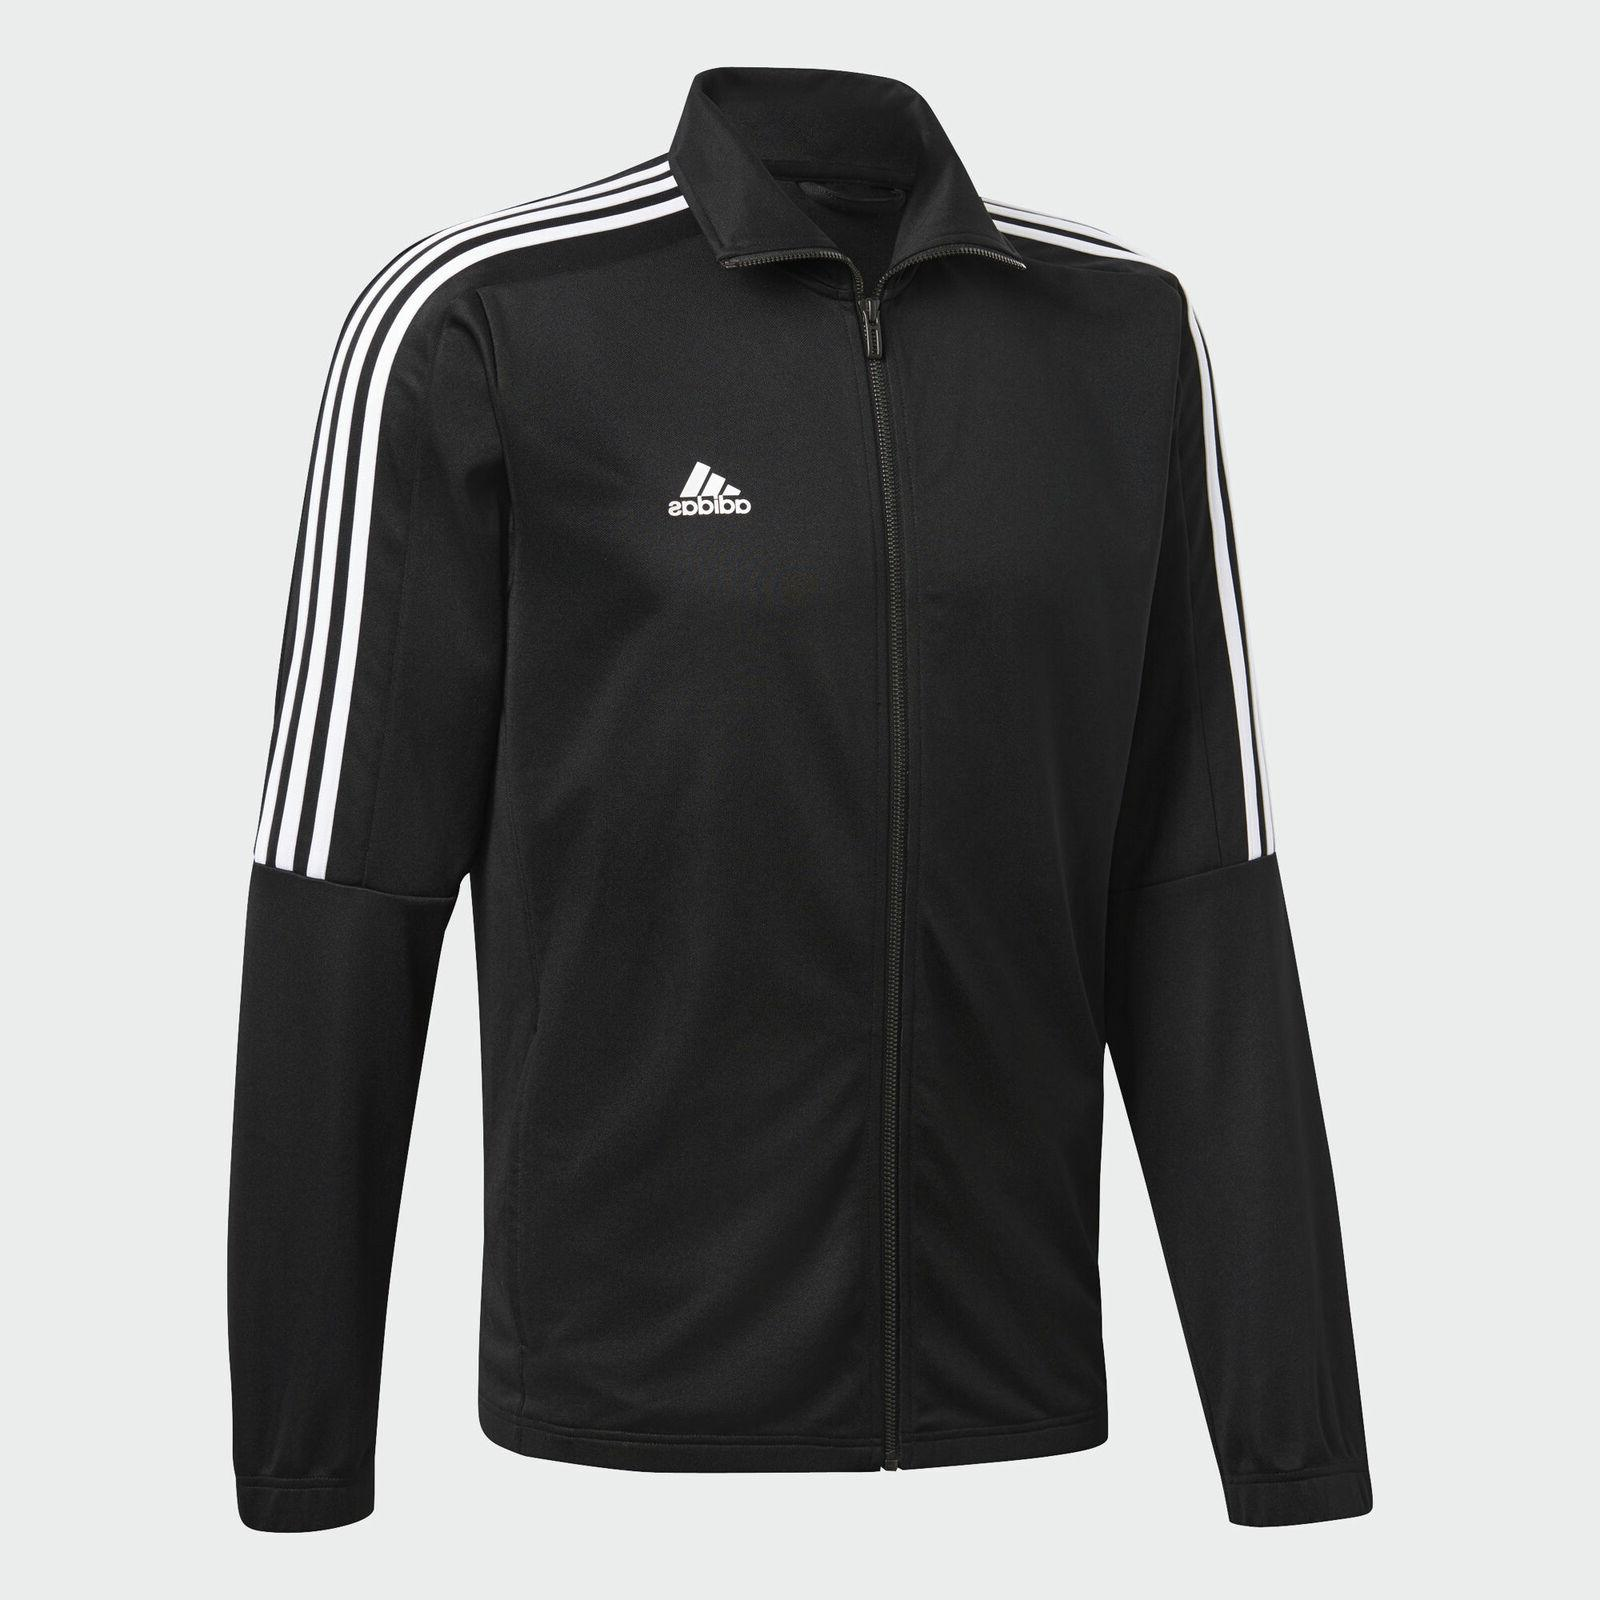 Adidas Tiro Track Suit Jacket White 3 Stripes Men's M